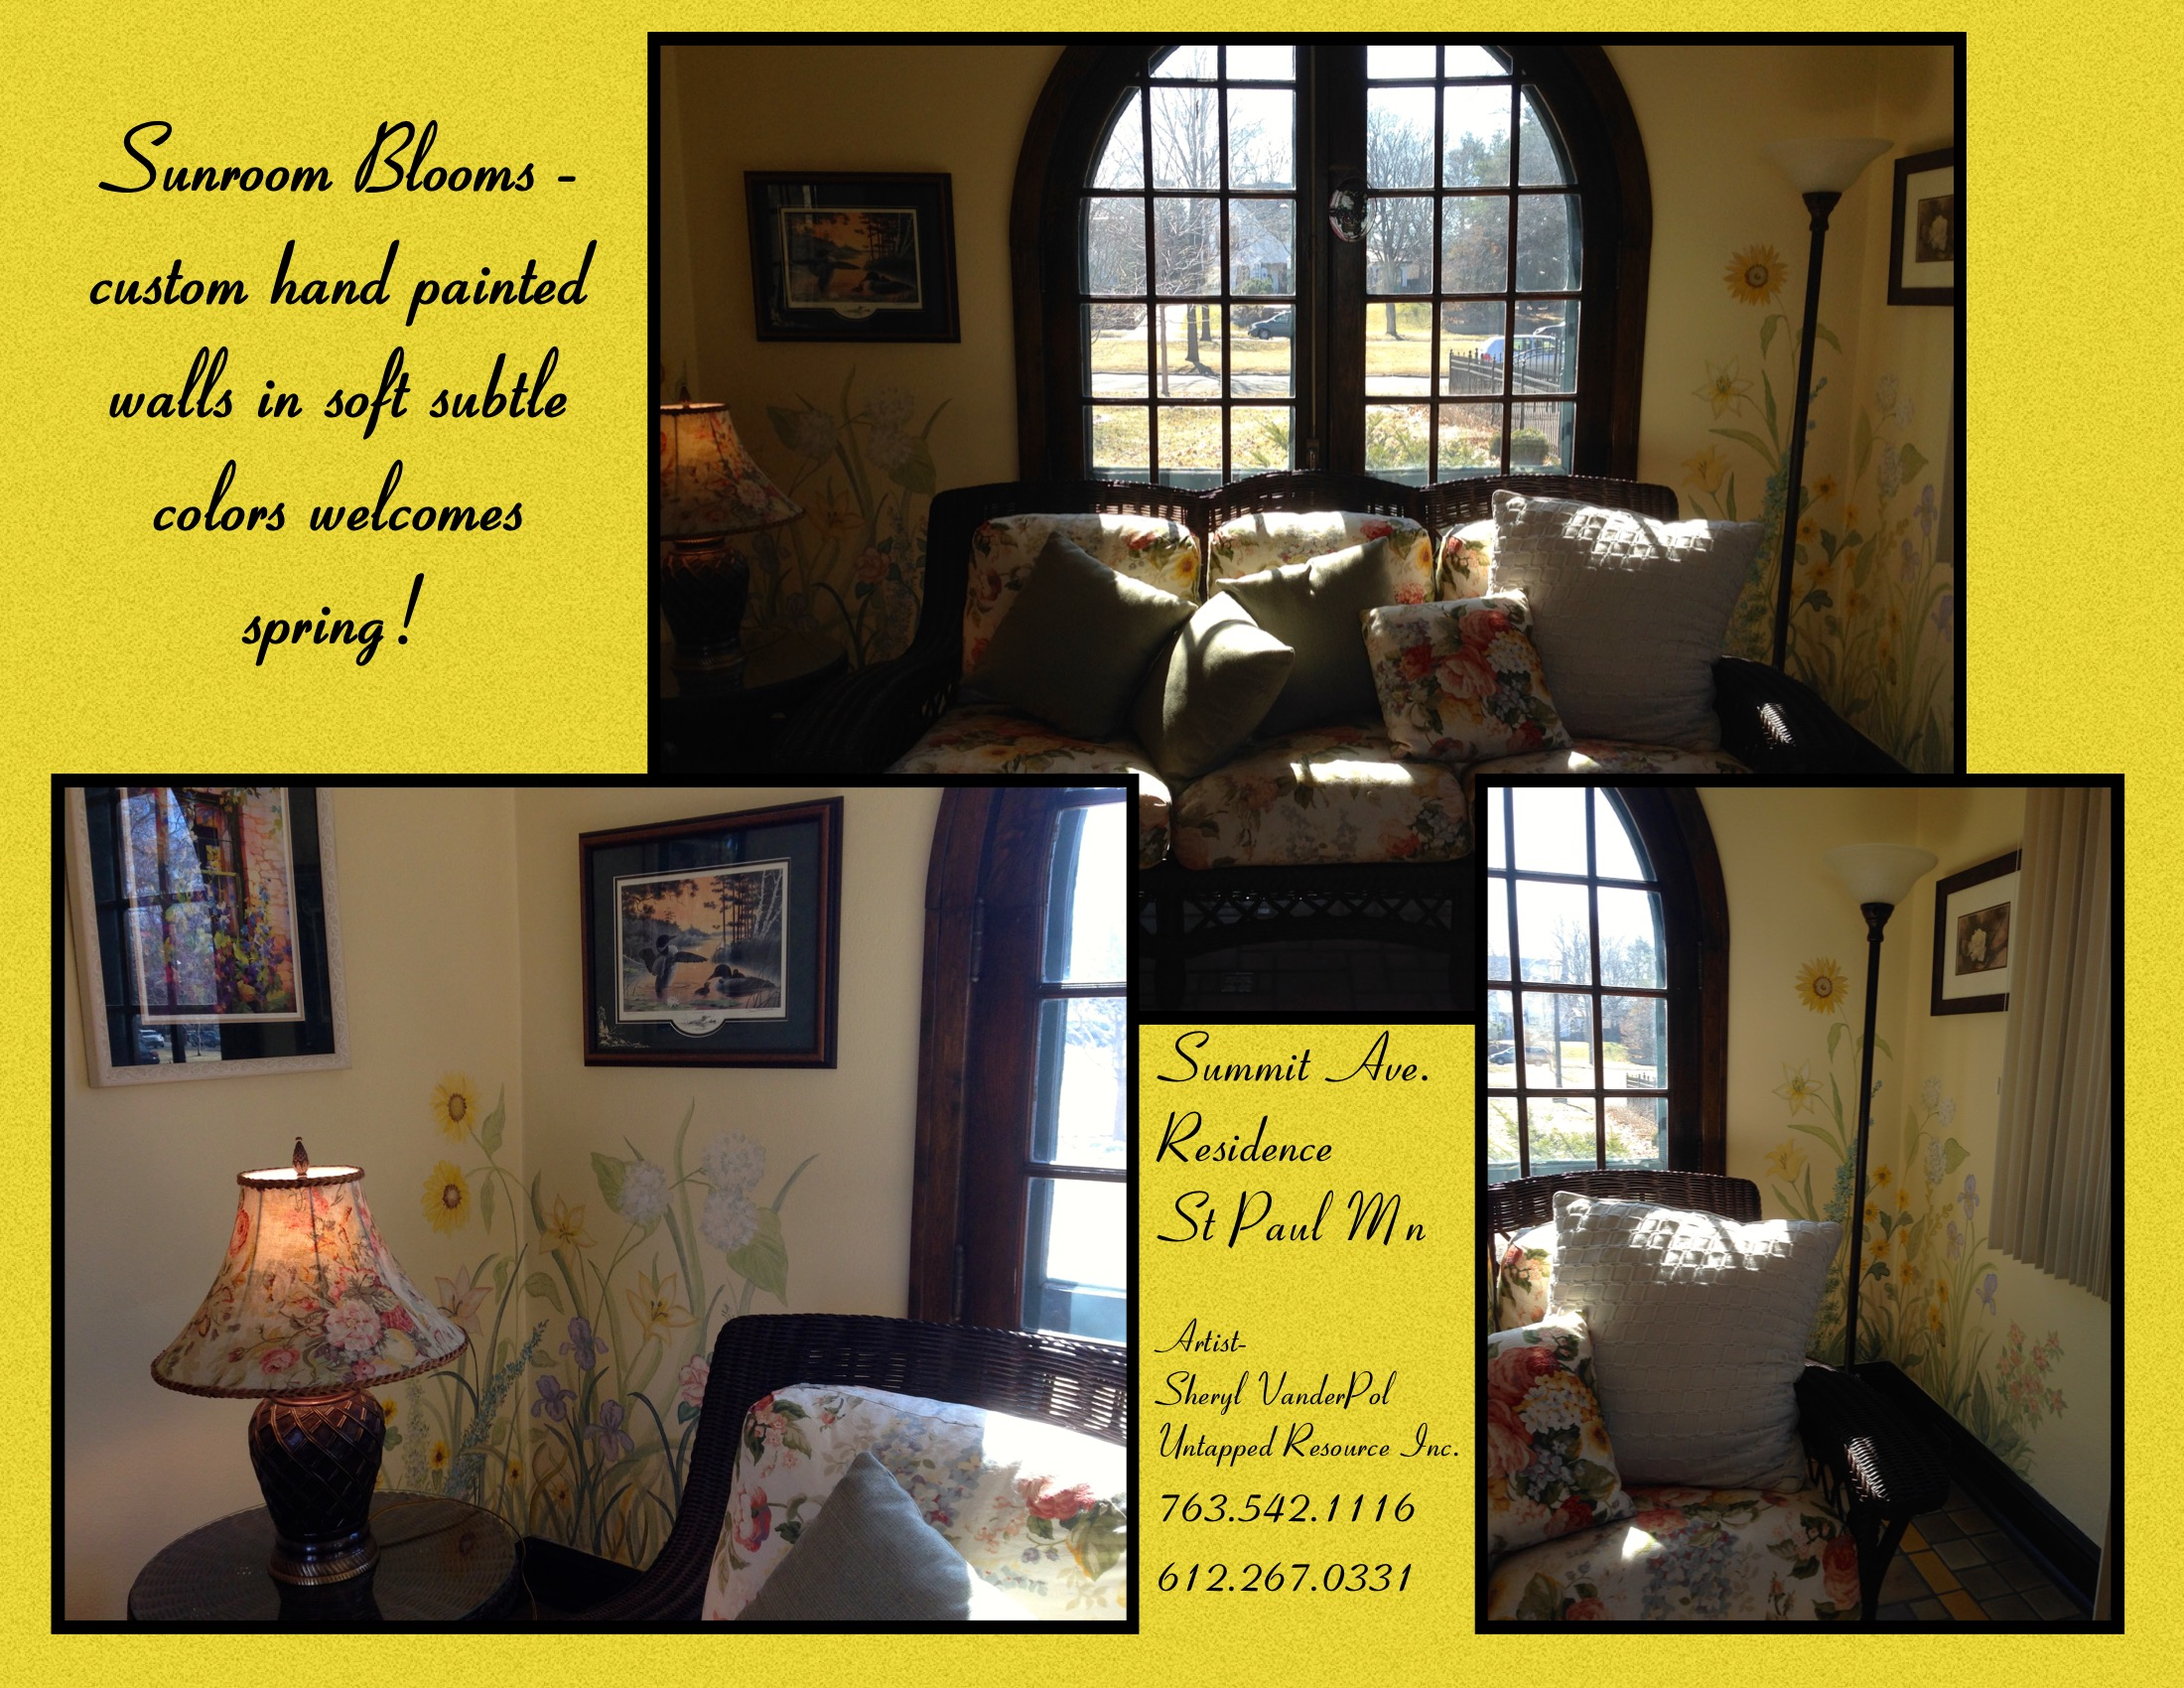 Hand painted murals, nature, florals